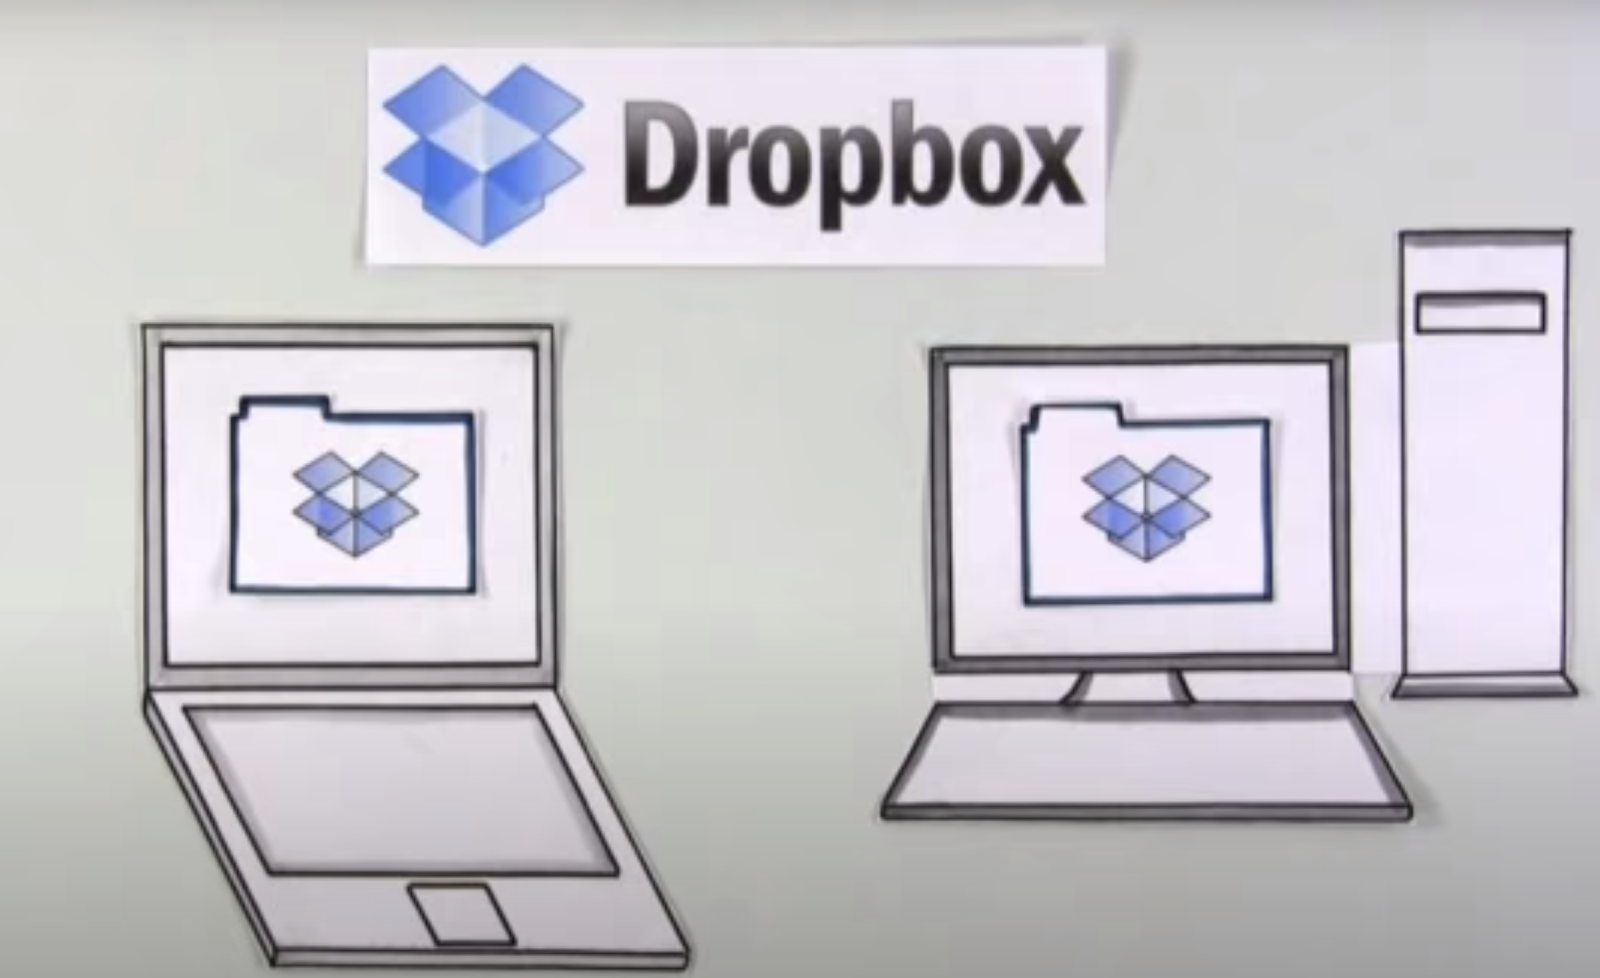 an image showing Dropbox MVP wireframe